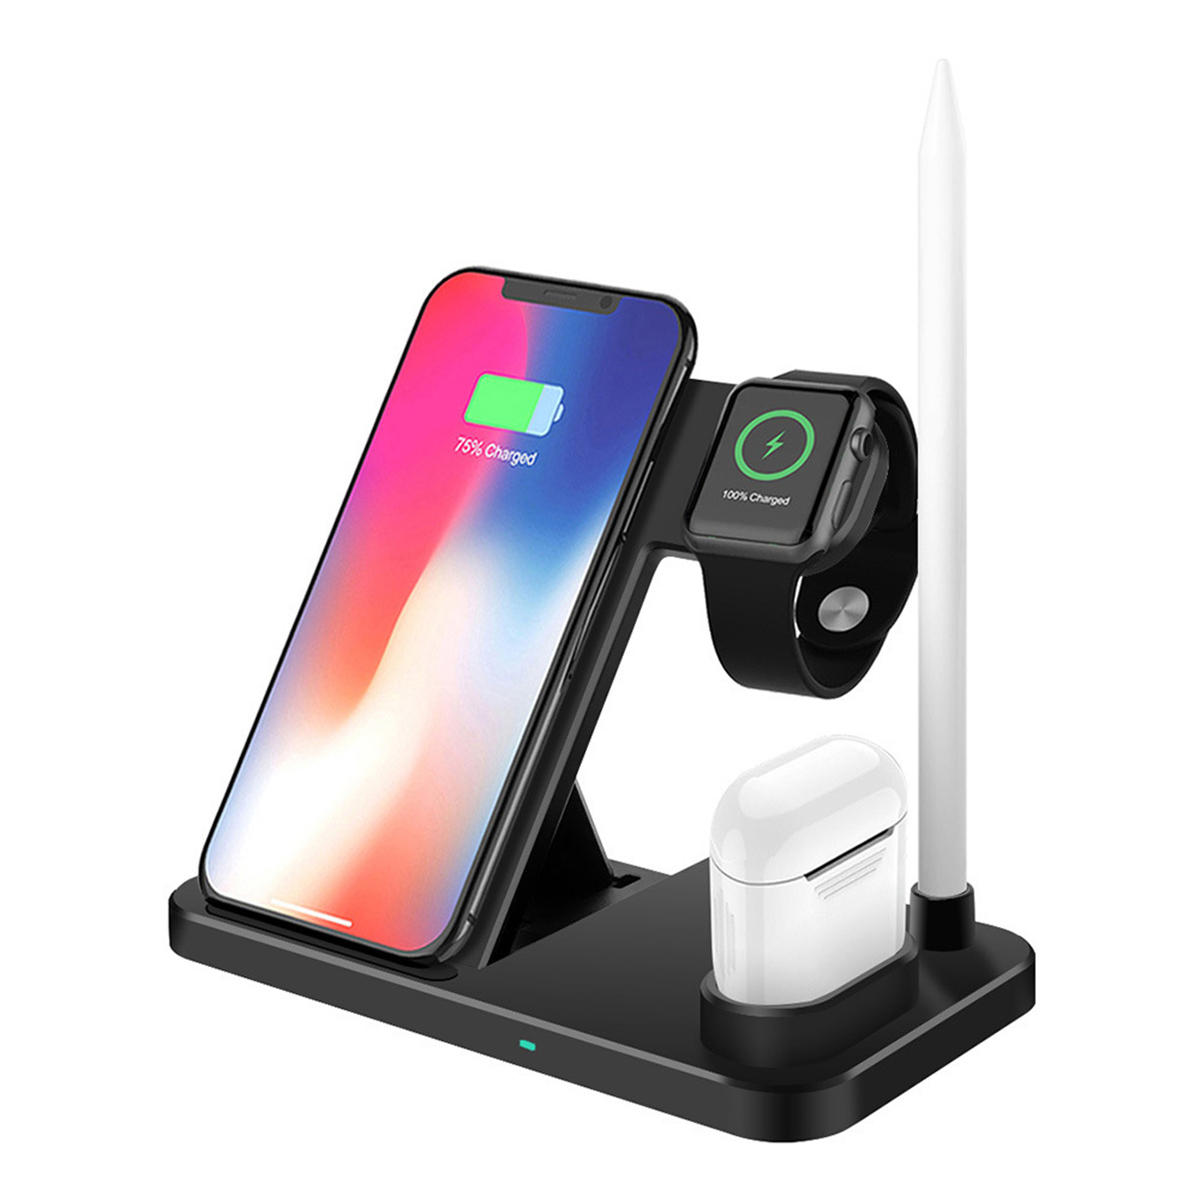 10W 4-in-1 Qi Fast شحن Wireless شاحن Pad for ذكي هاتف iهاتف Samsung Apple Watch Series Apple AirPods Apple Pencil